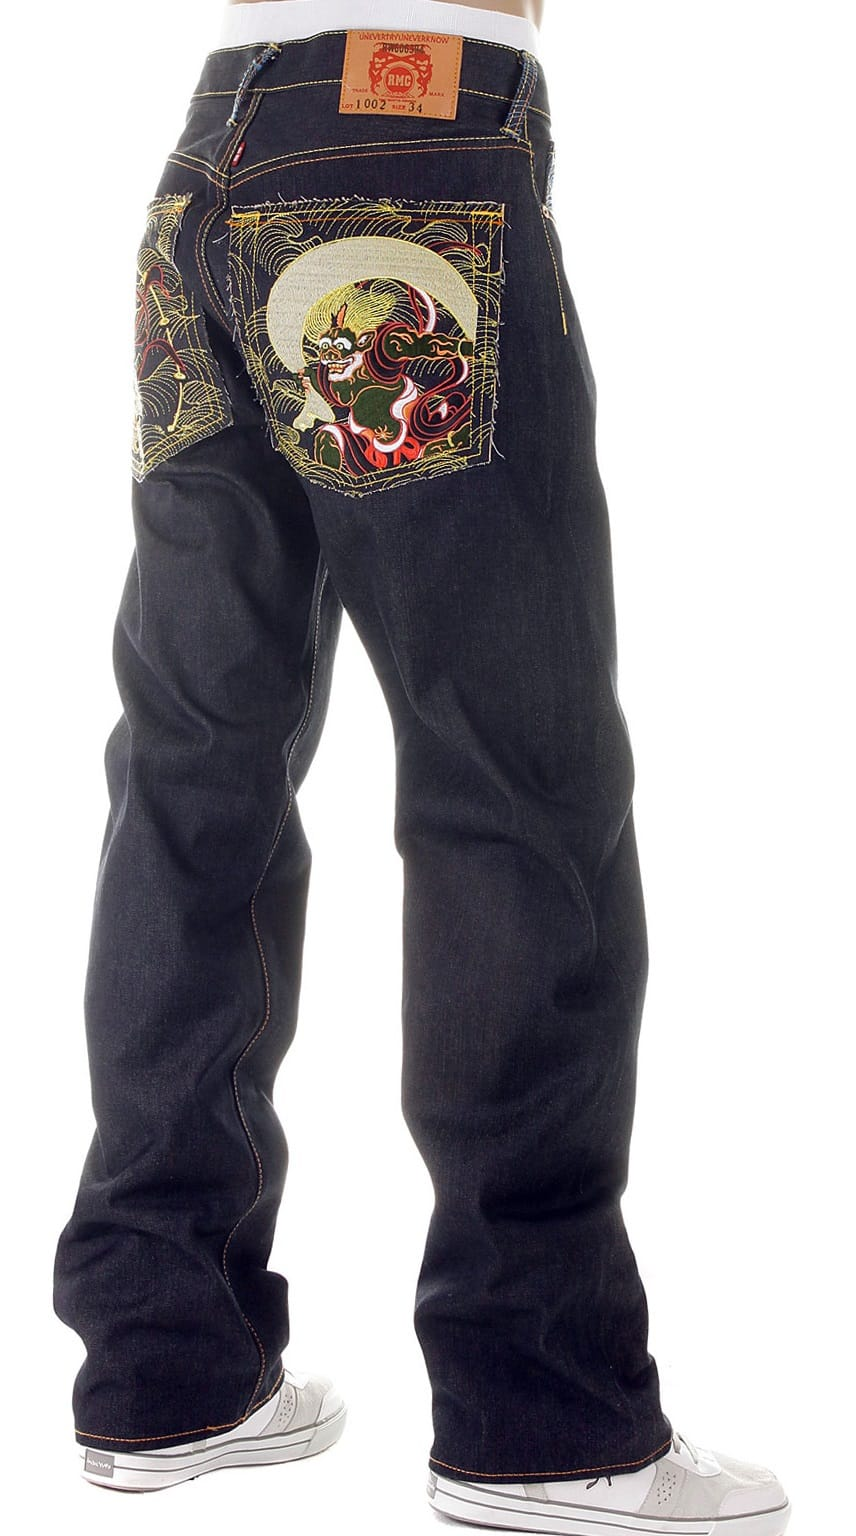 Embroidered RMC denim jeans